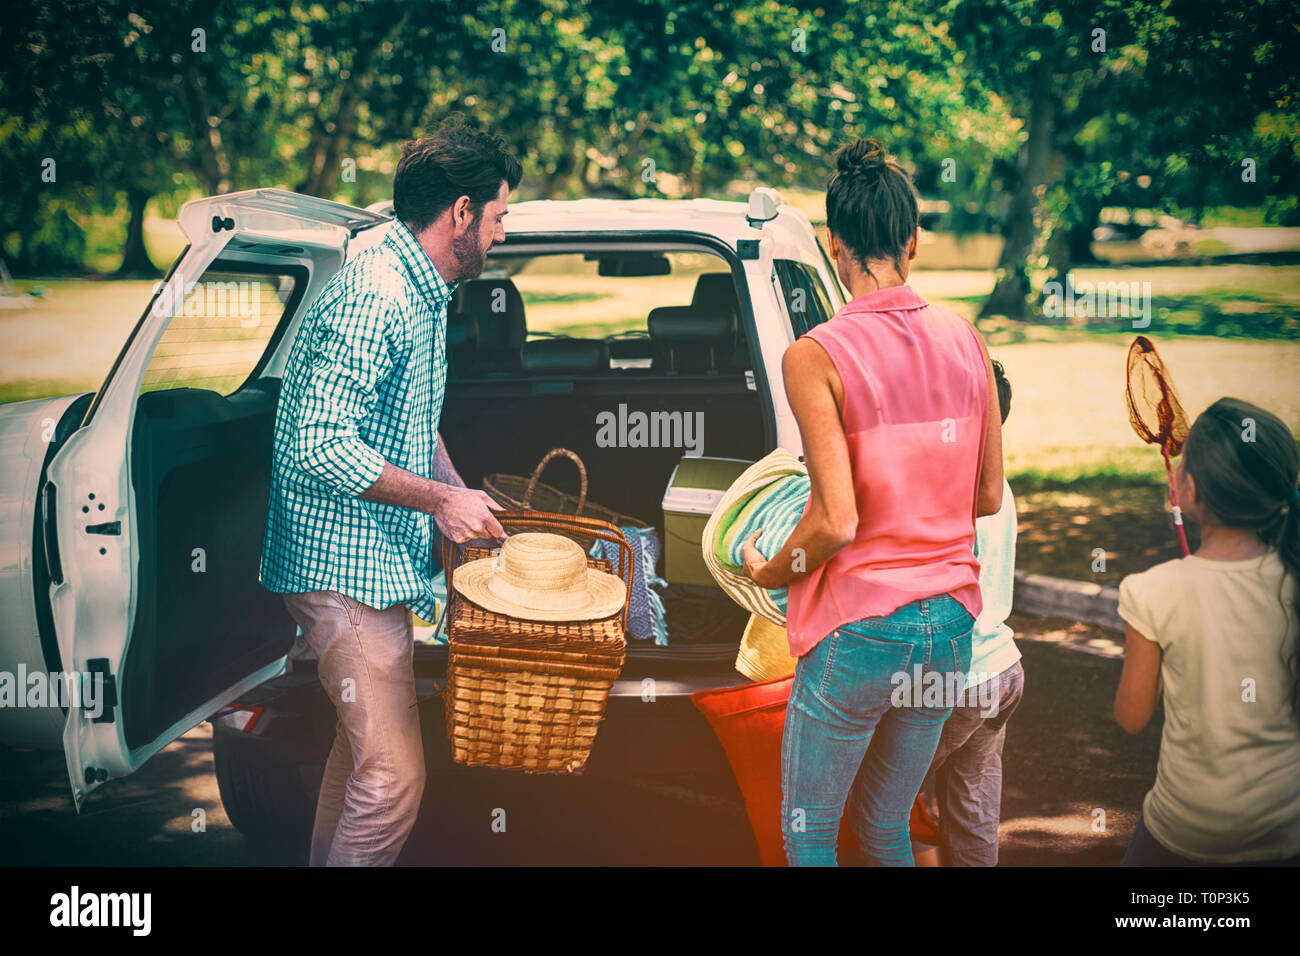 Family placing picnic items in car trunk - Stock Image